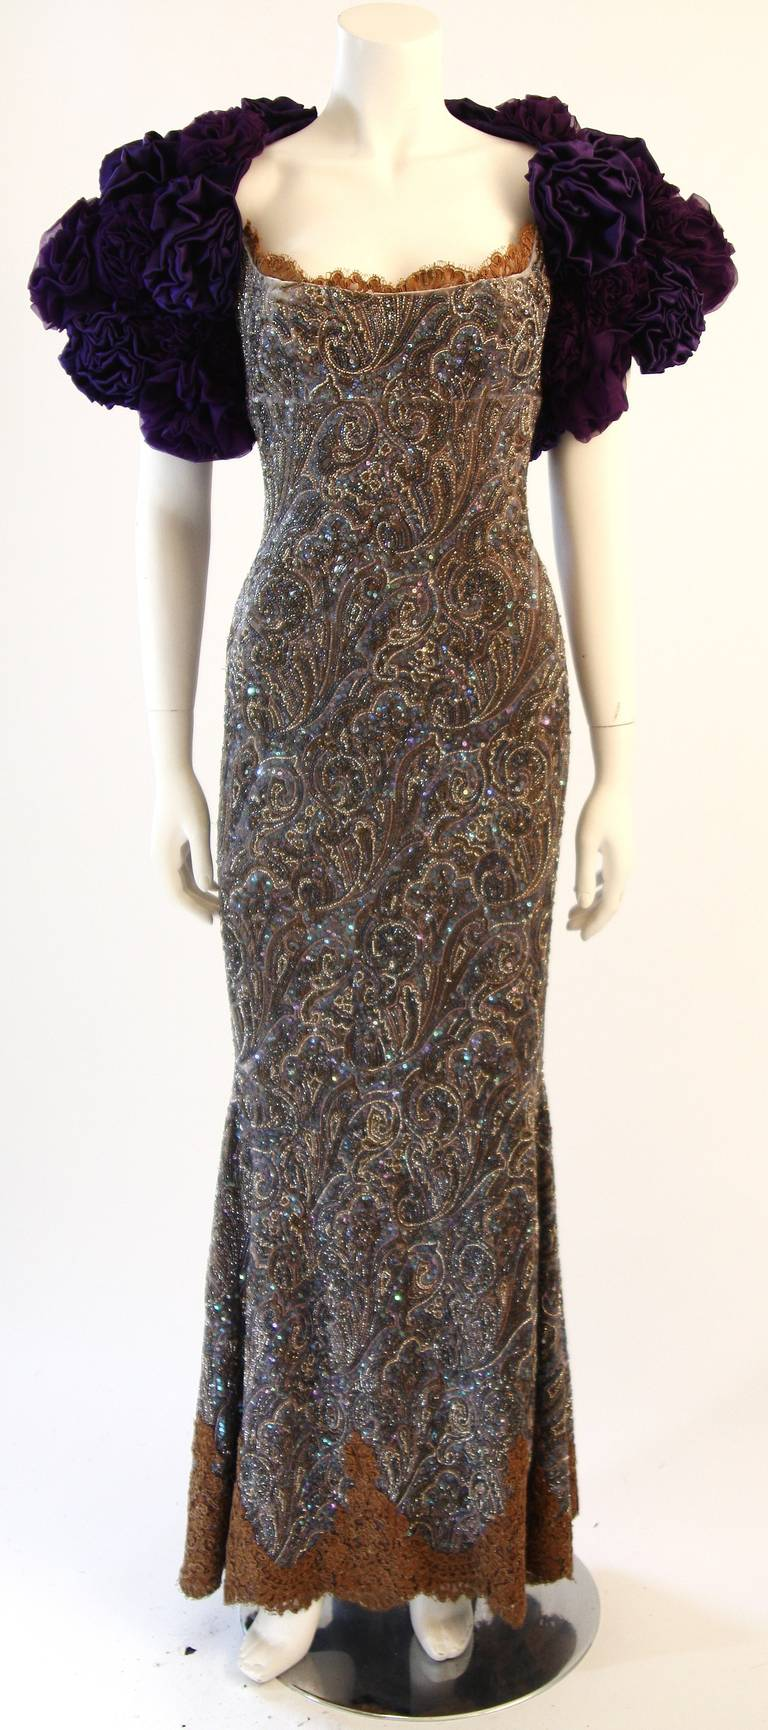 RANDI RAHM COUTURE Purple Sequin Hand Beaded Velvet Paisley Gown Size 4-6 3